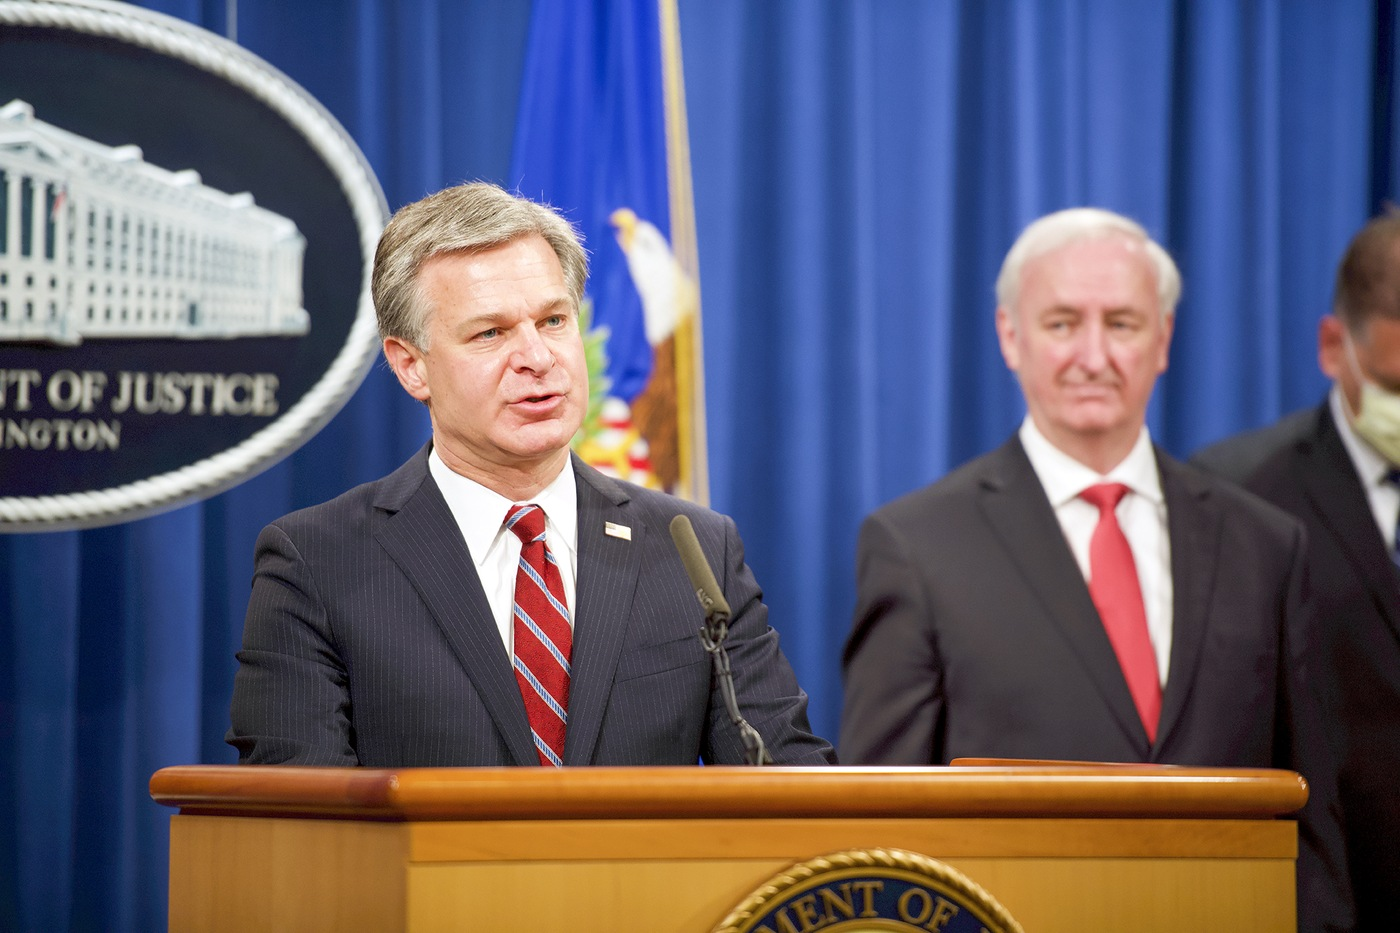 FBI Director Christopher Wray speaks at a September 22, 2020 press conference at the Department of Justice announcing the results of Operation DisrupTor as Deputy Attorney General Jeffrey A. Rosen looks on.